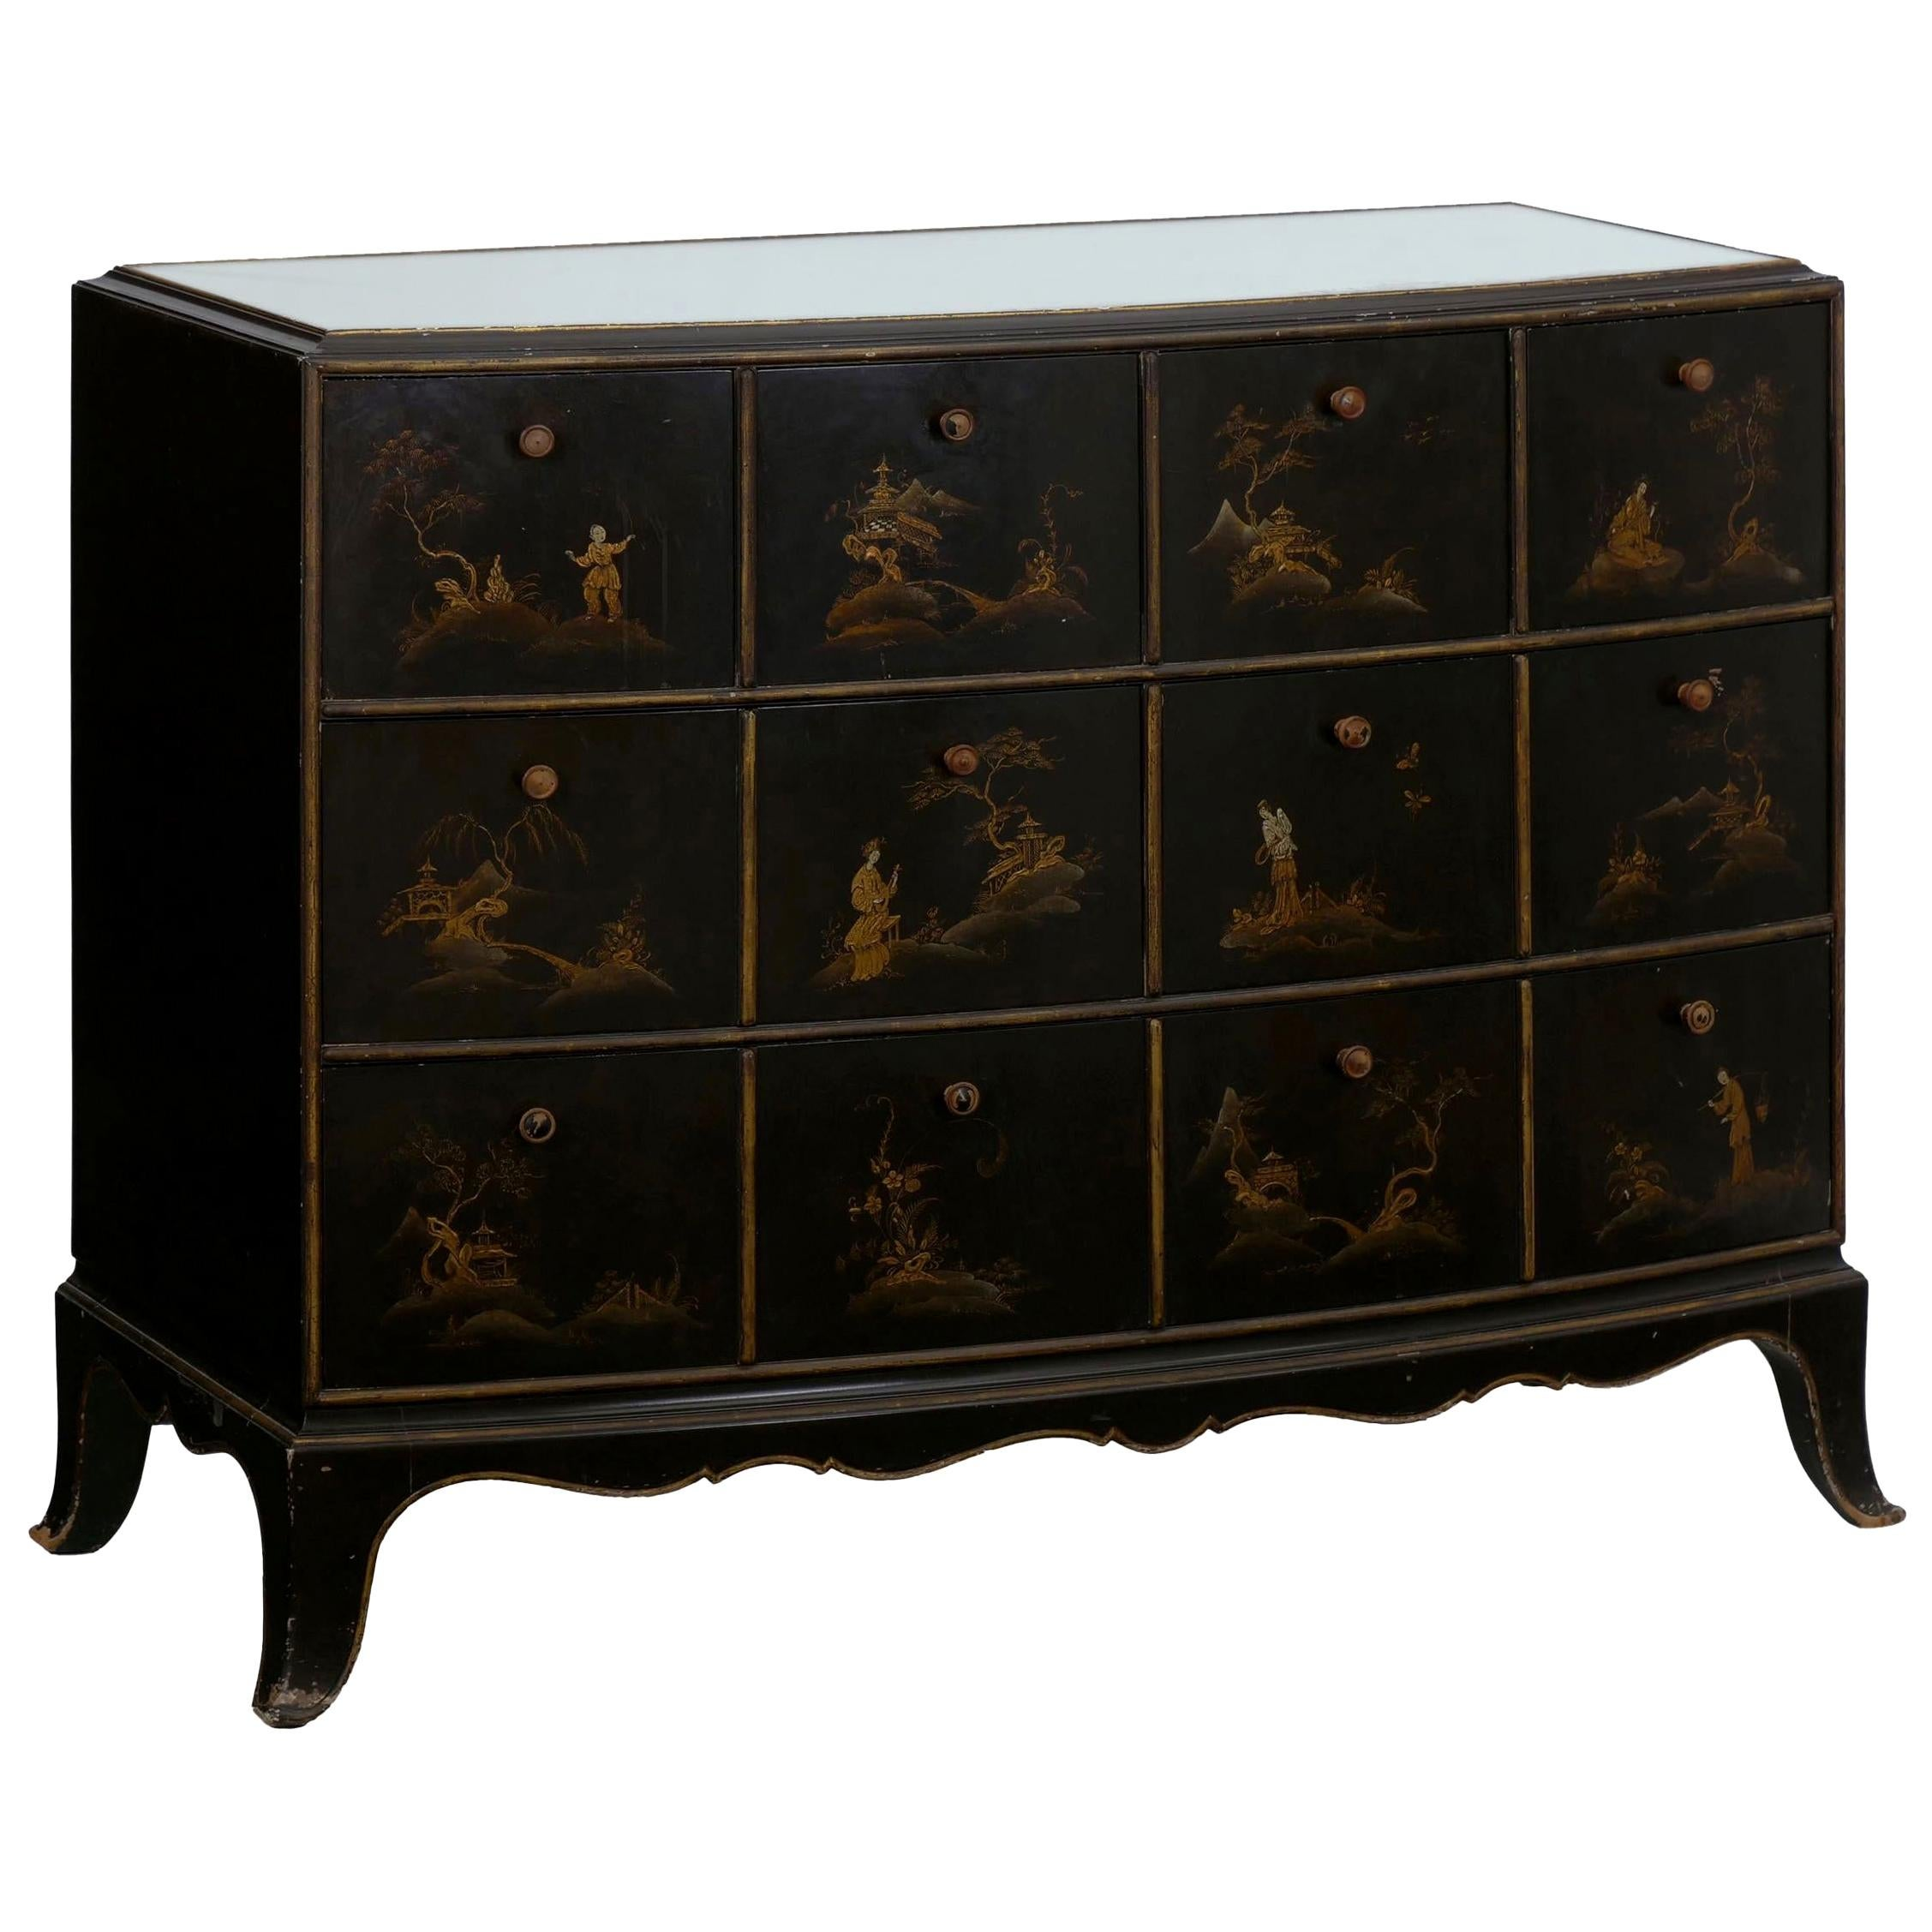 Art Deco Chinoiserie Mirrored Top Chest of Drawers Dresser, circa 1940s